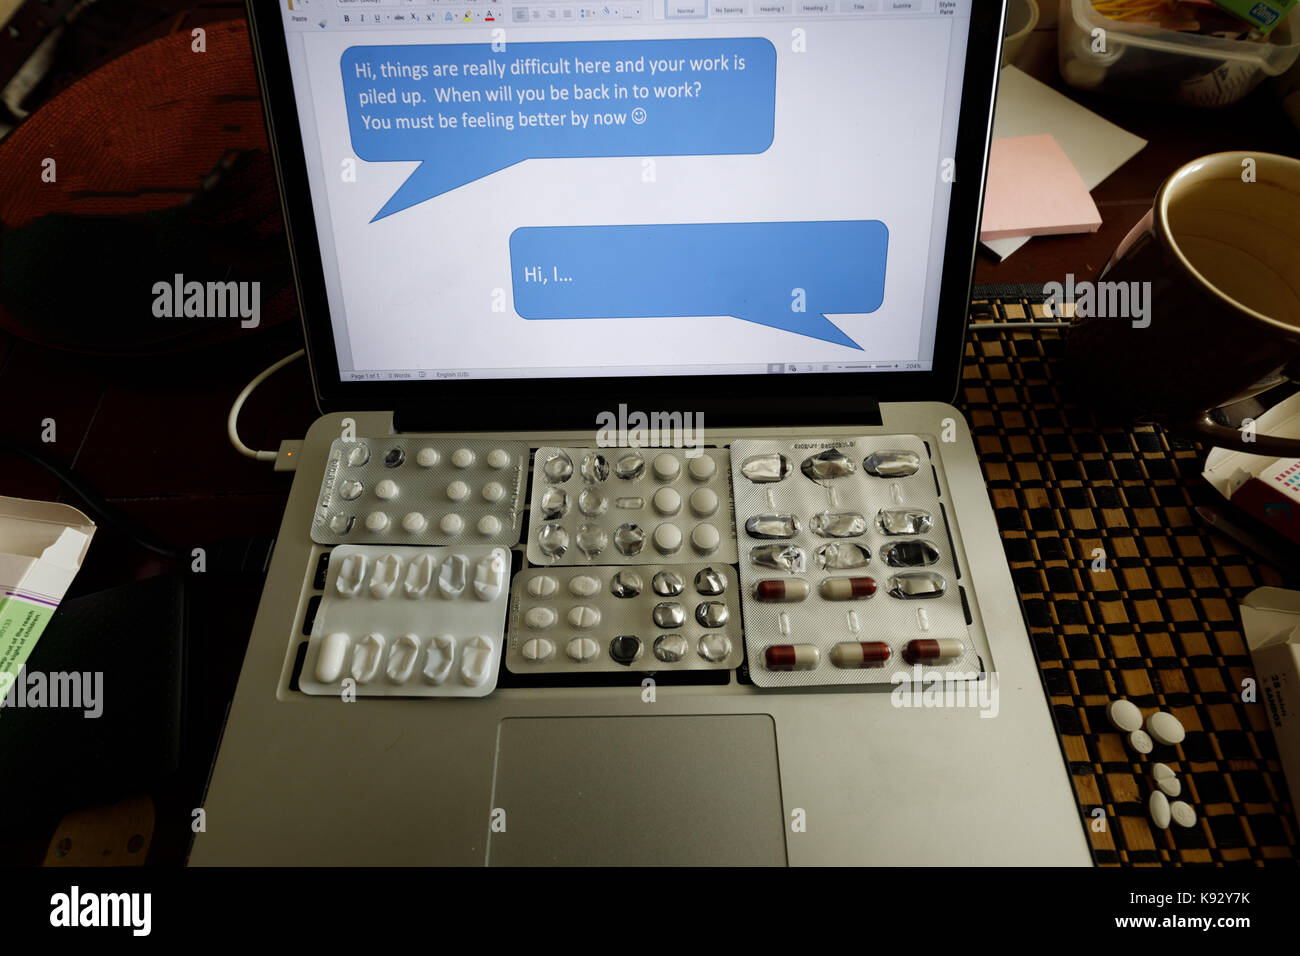 Computer keys covered by pills. metaphorical block to replying to message, sick leave perceptions - Stock Image